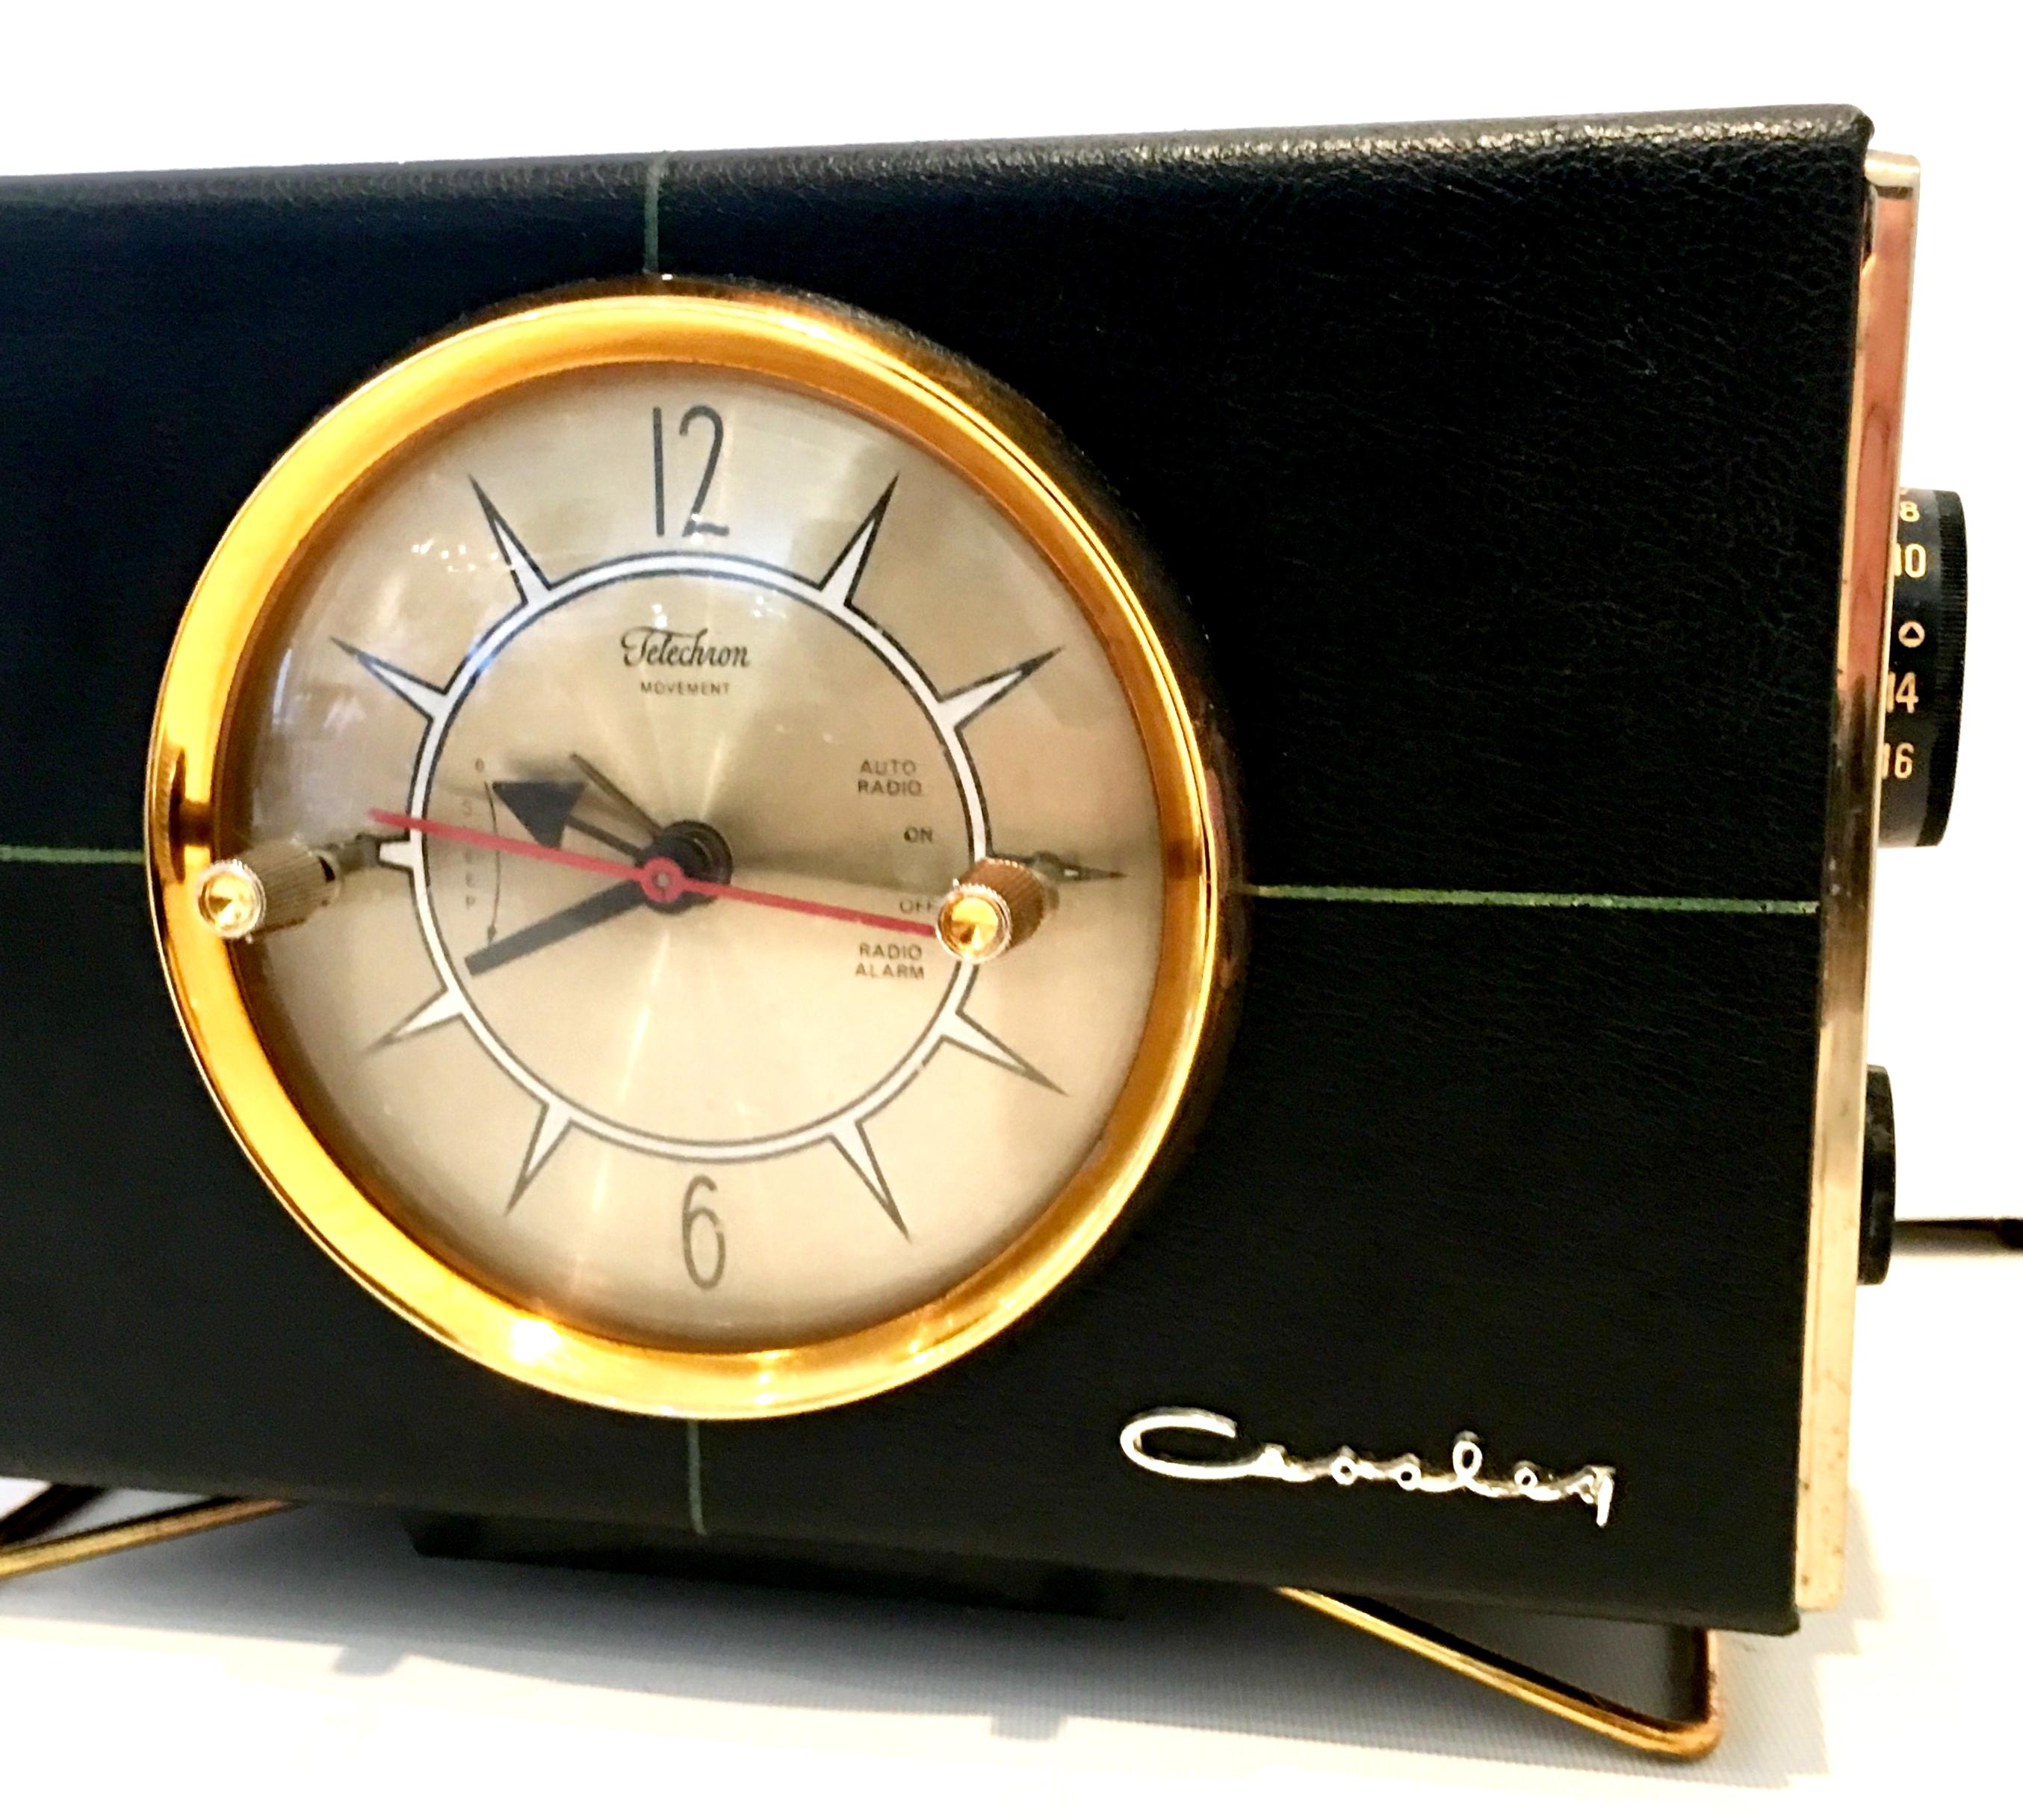 Crosley Radio 1950s Mid Century Modern Electronic Alarm Clock And Radio By Crosley